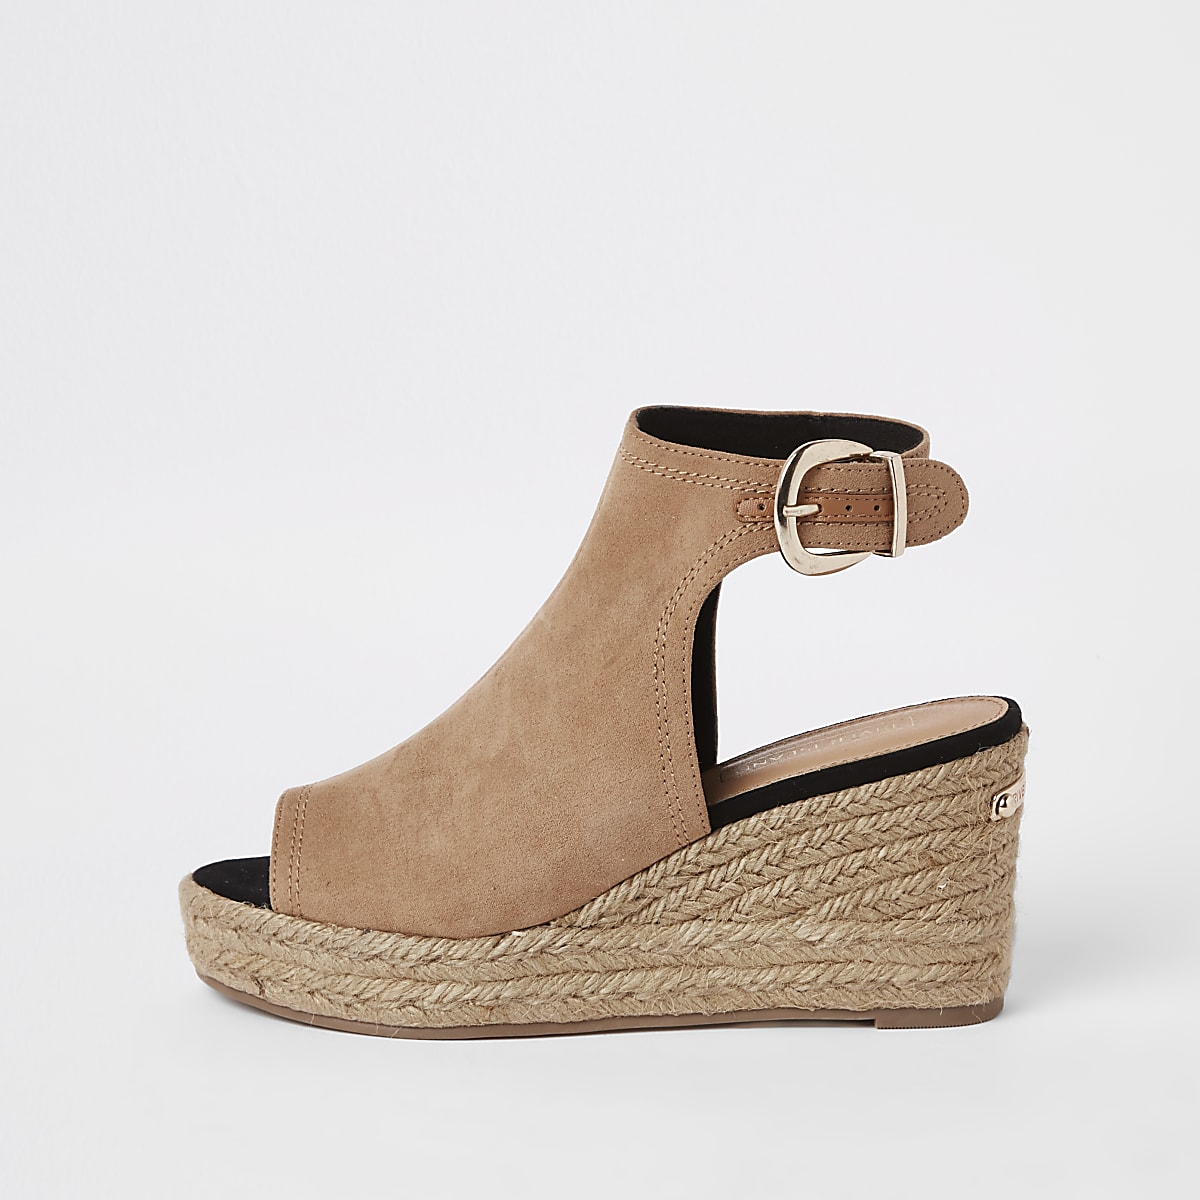 efbbaafcb32 Light brown espadrille platform wedges